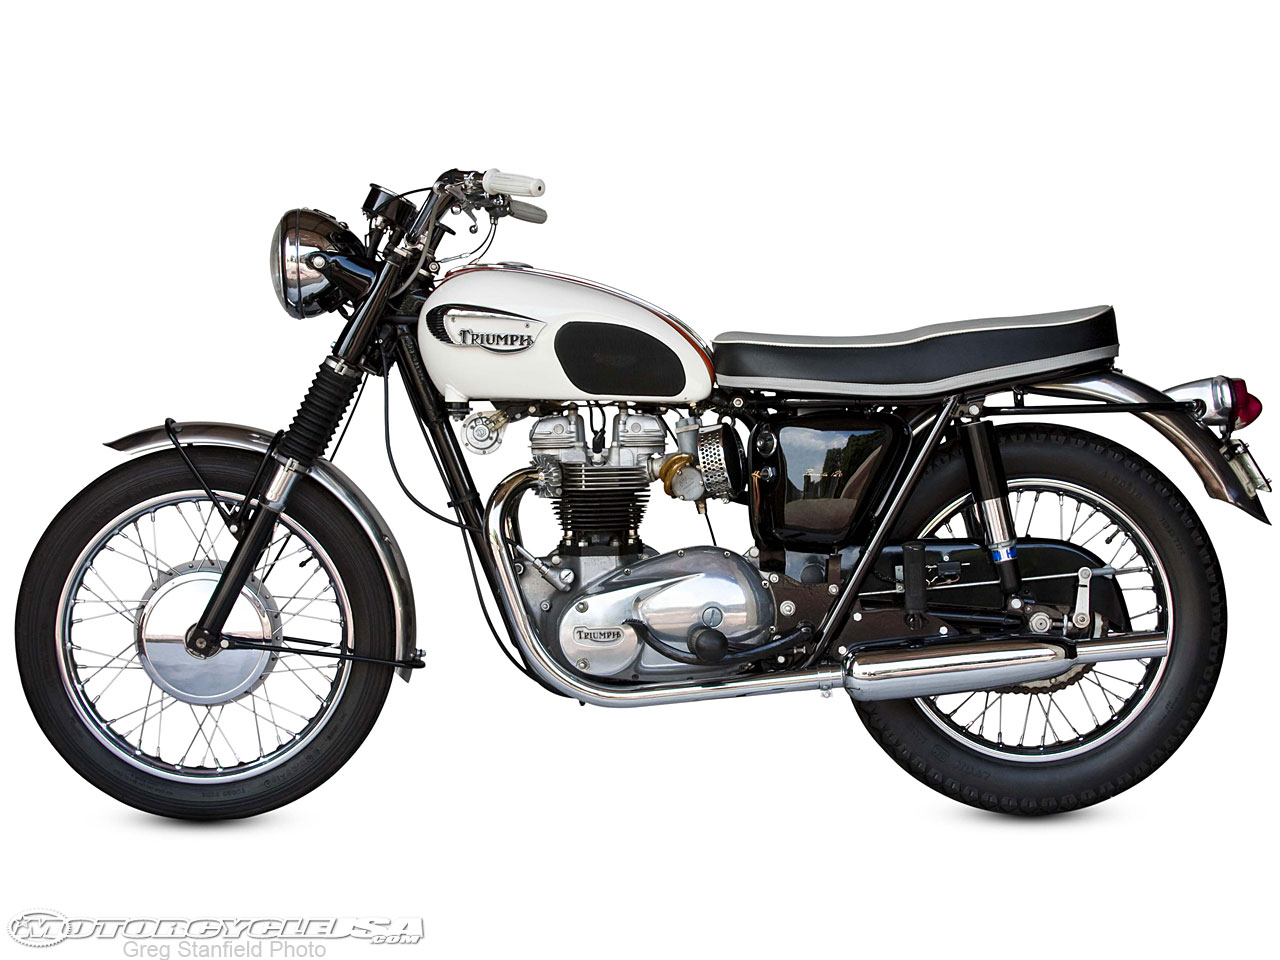 bikes wallpapers vintage bmw motorcycle. Black Bedroom Furniture Sets. Home Design Ideas